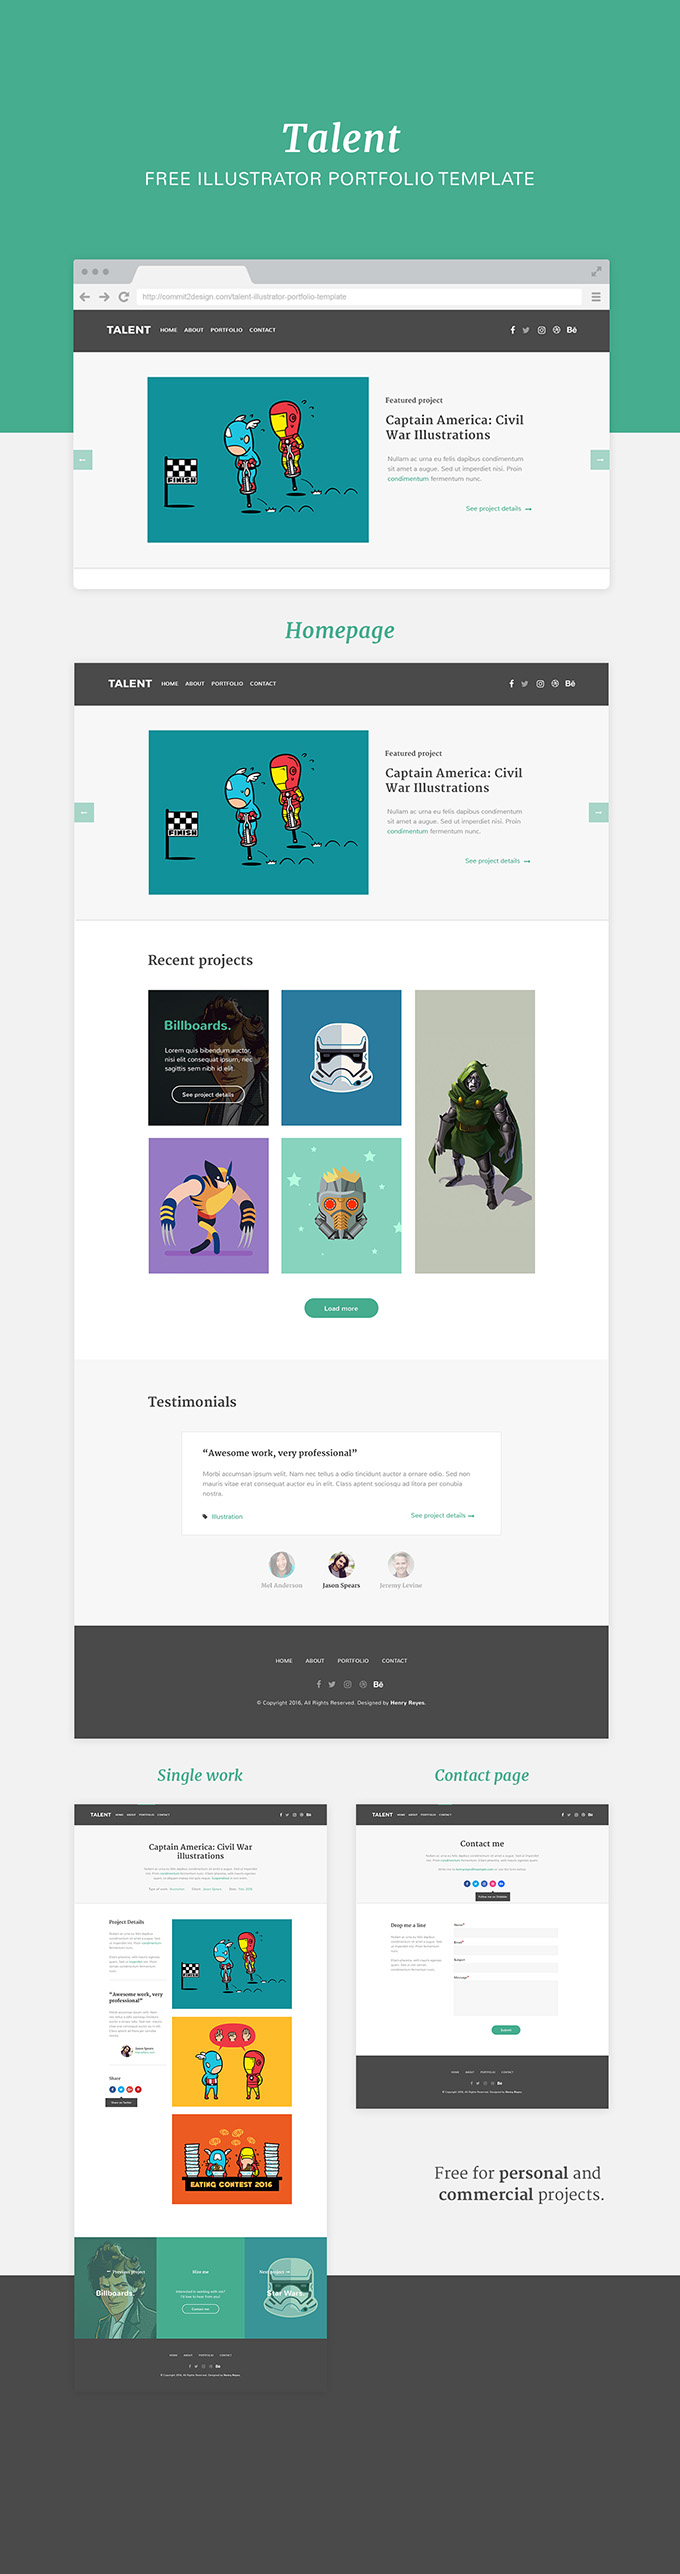 Talent, illustrator portfolio template preview